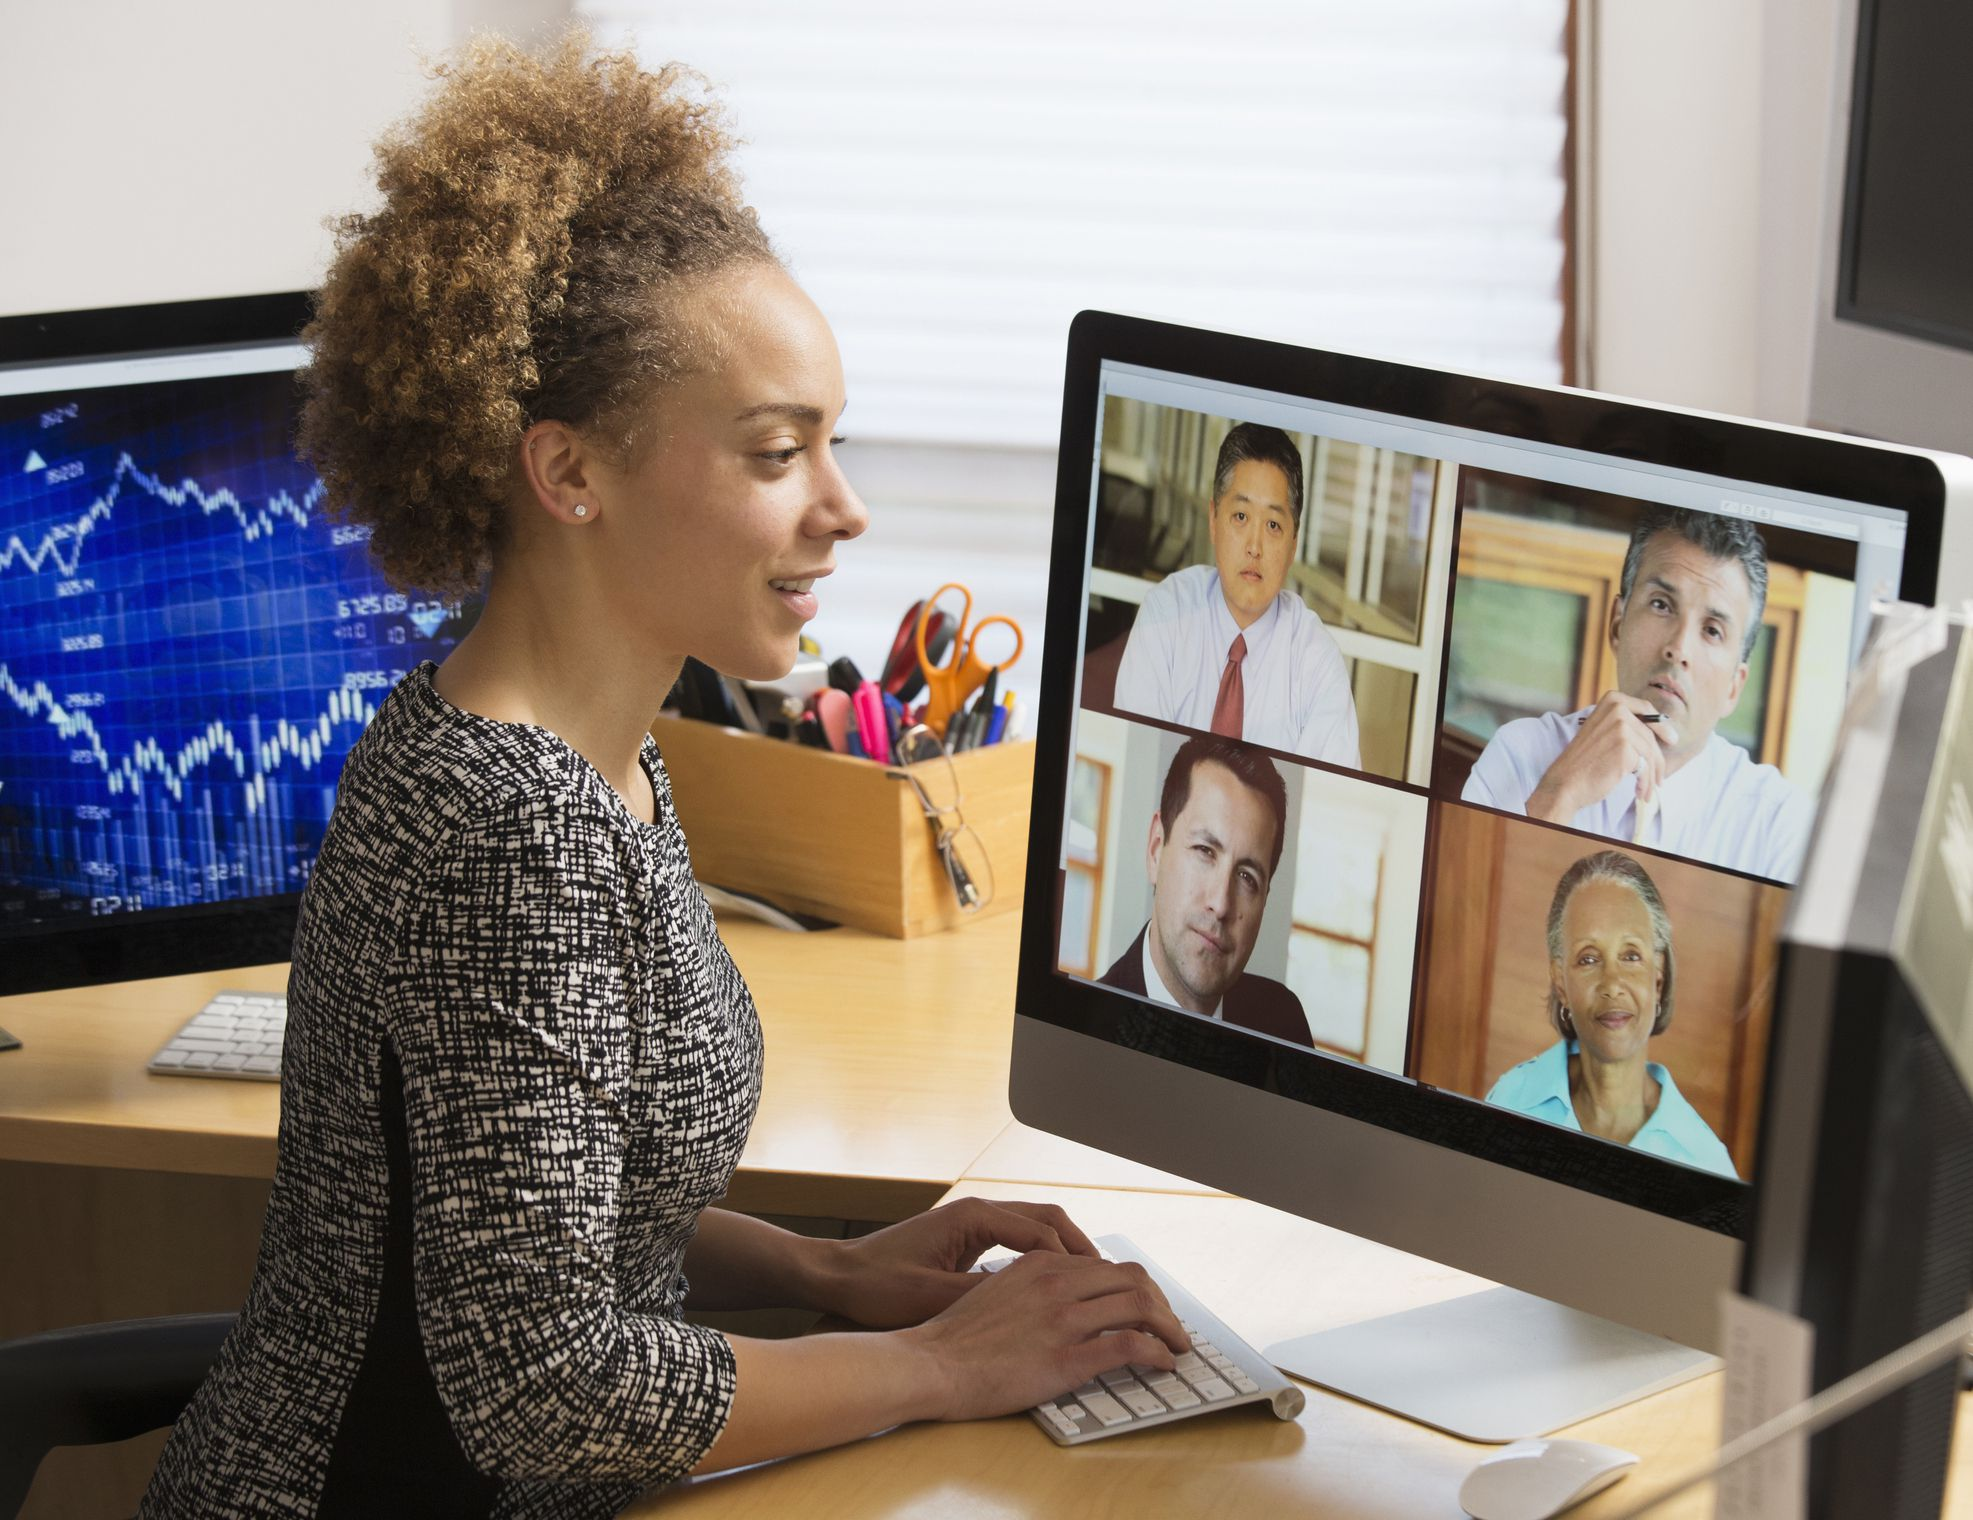 How to Use Zoom: The 12 Best Tips for Successful Video Conferencing